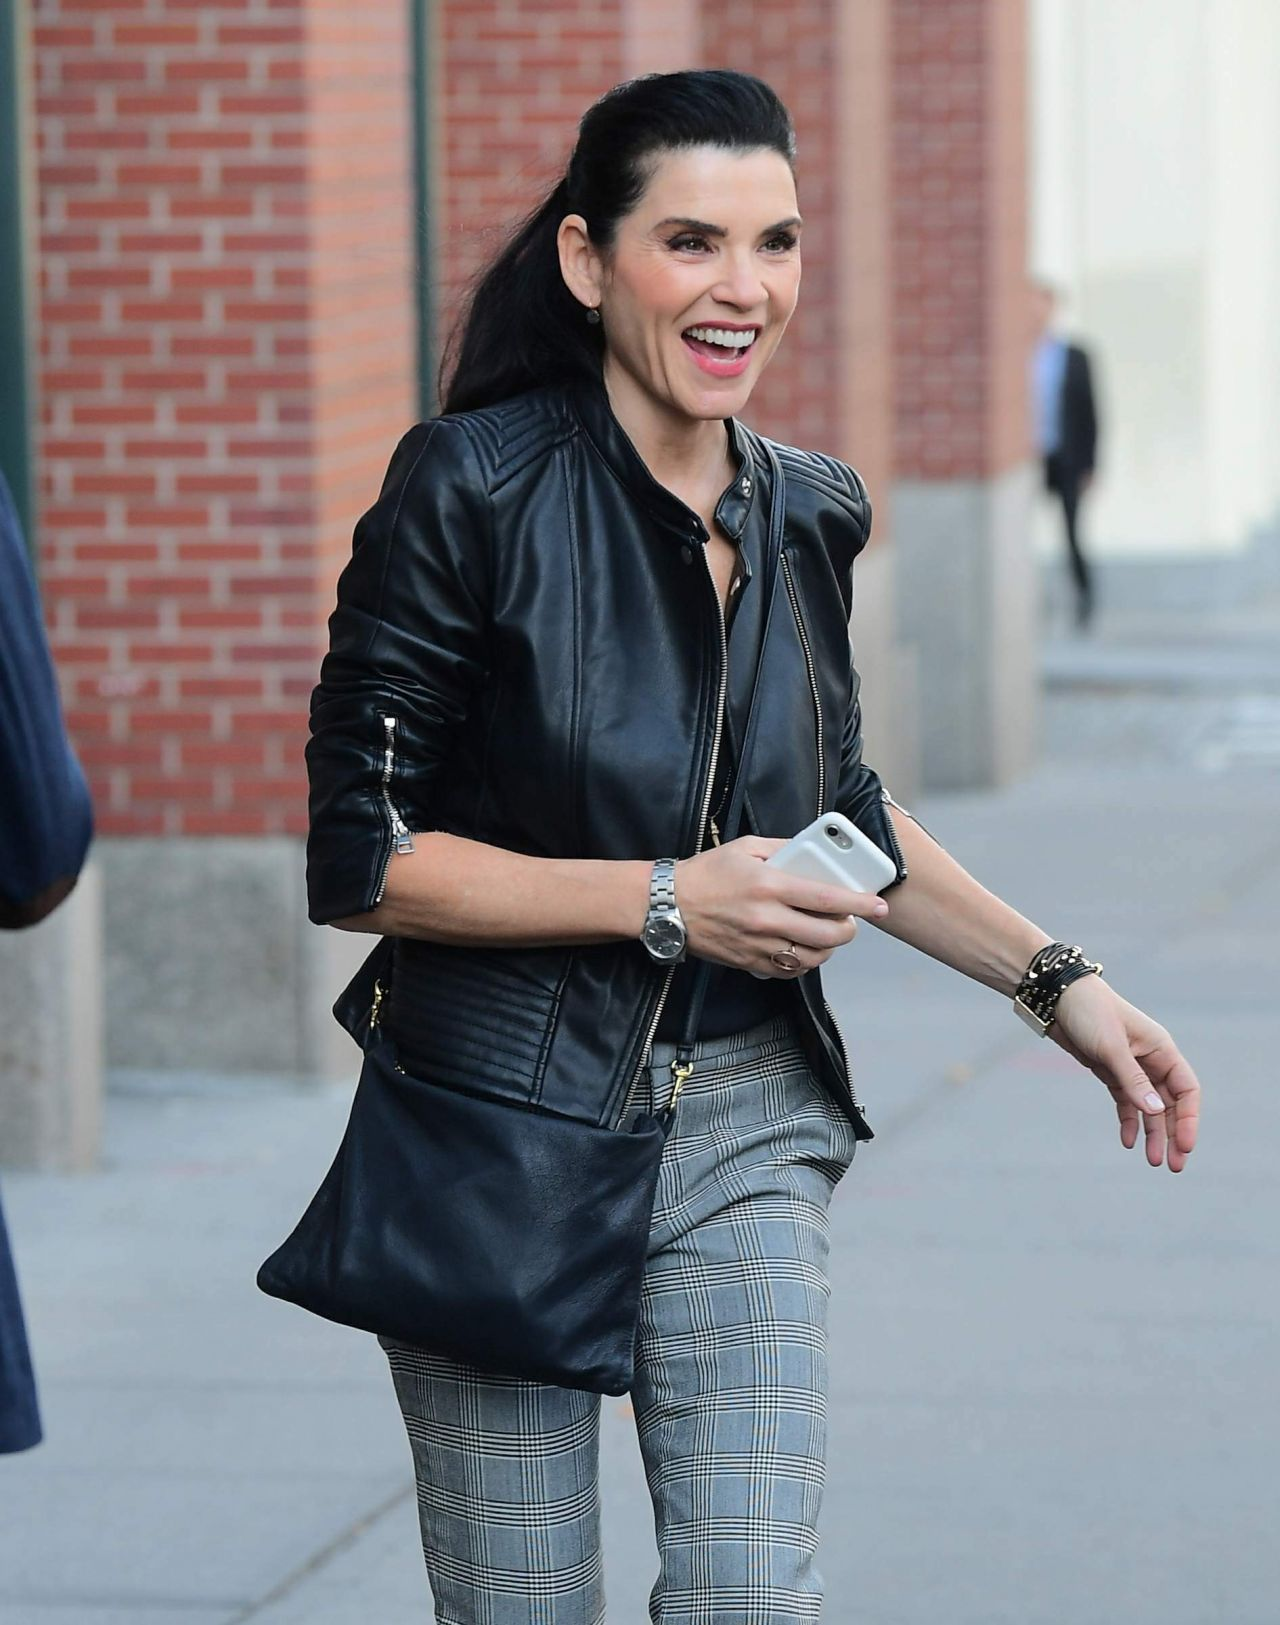 Julianna Margulies Casual Style Nyc 11 03 2017